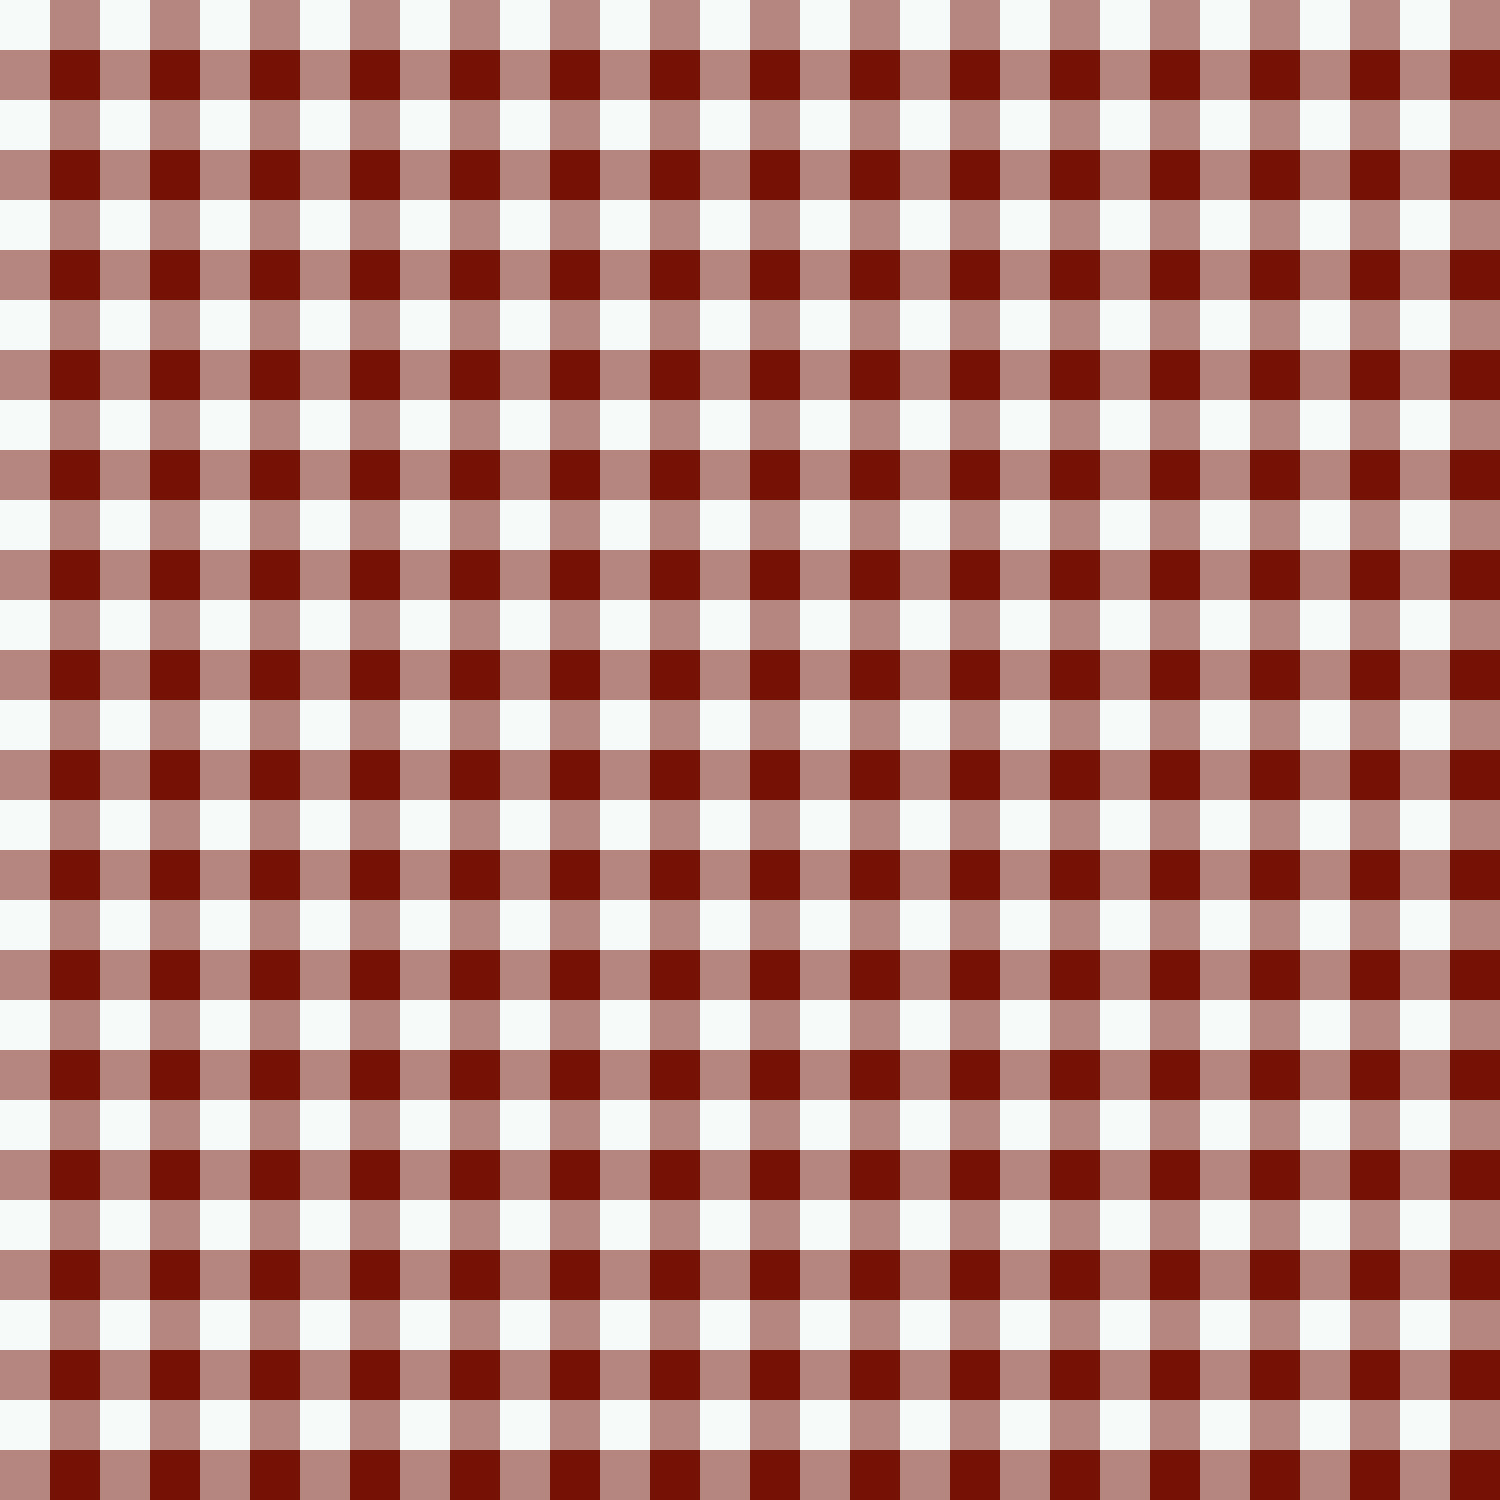 Free Clipart N Images: Free Christmas Gingham Backgrounds.